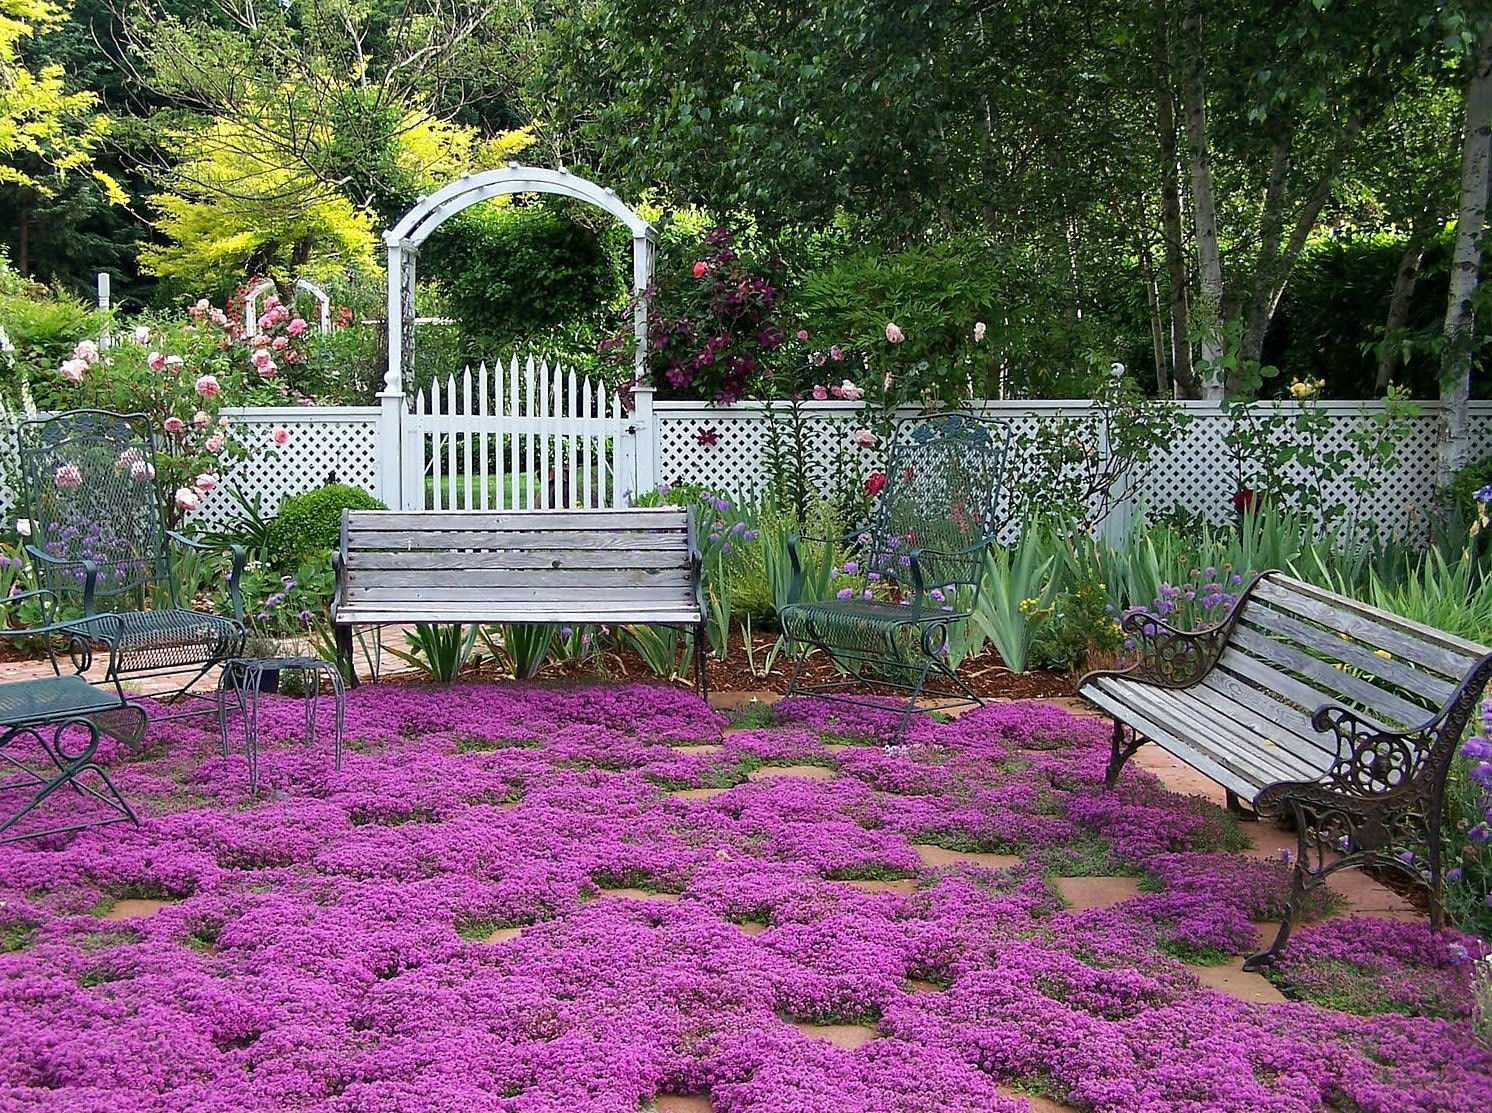 creeping thyme ground cover 1000 seeds fragrant herb pink. Black Bedroom Furniture Sets. Home Design Ideas